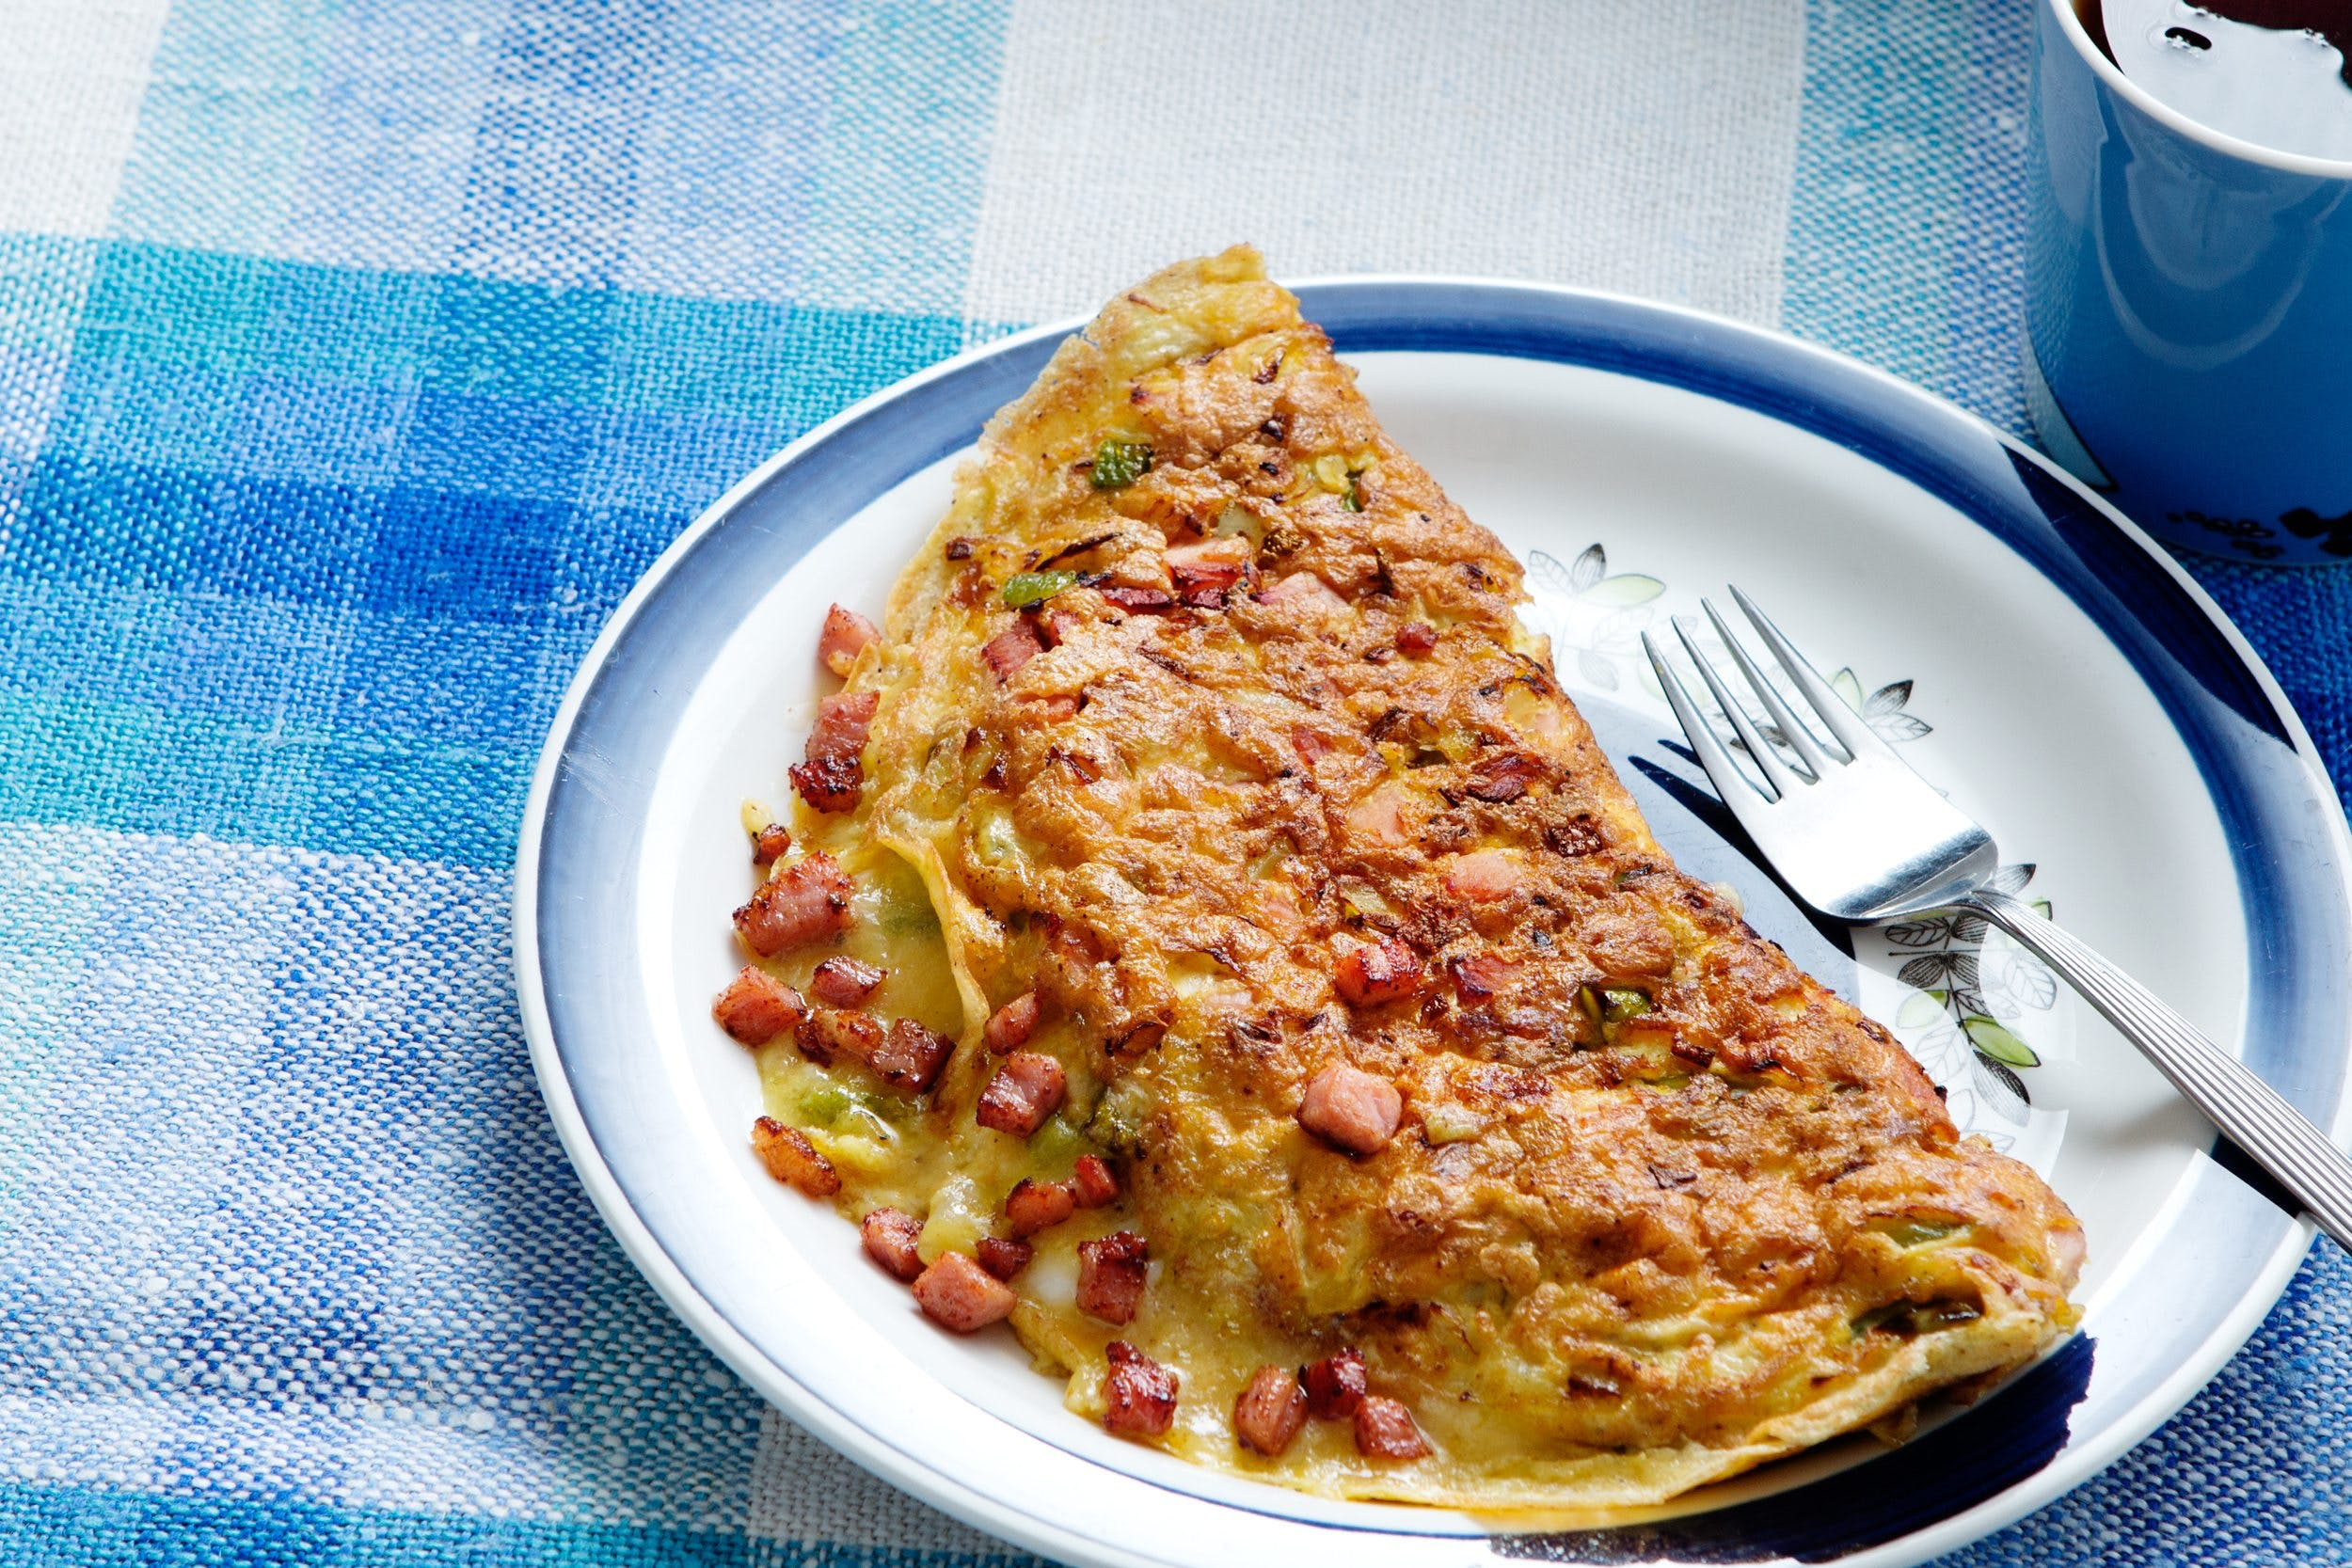 Keto Western Omelet - A Great All Day Breakfast